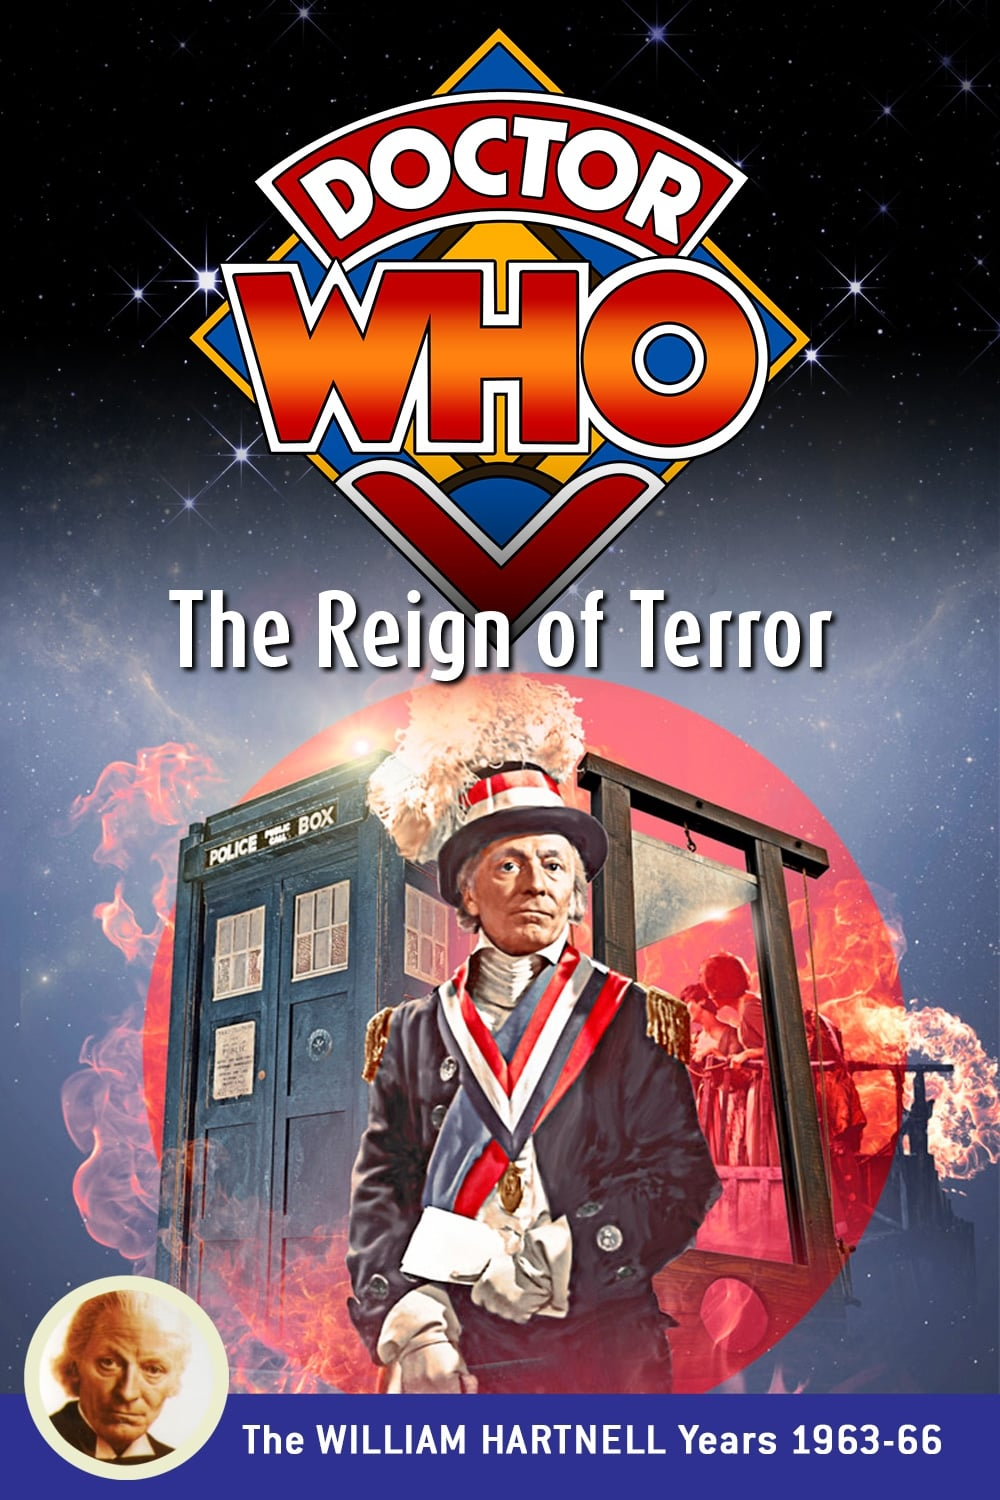 Doctor Who: The Reign of Terror (1964)